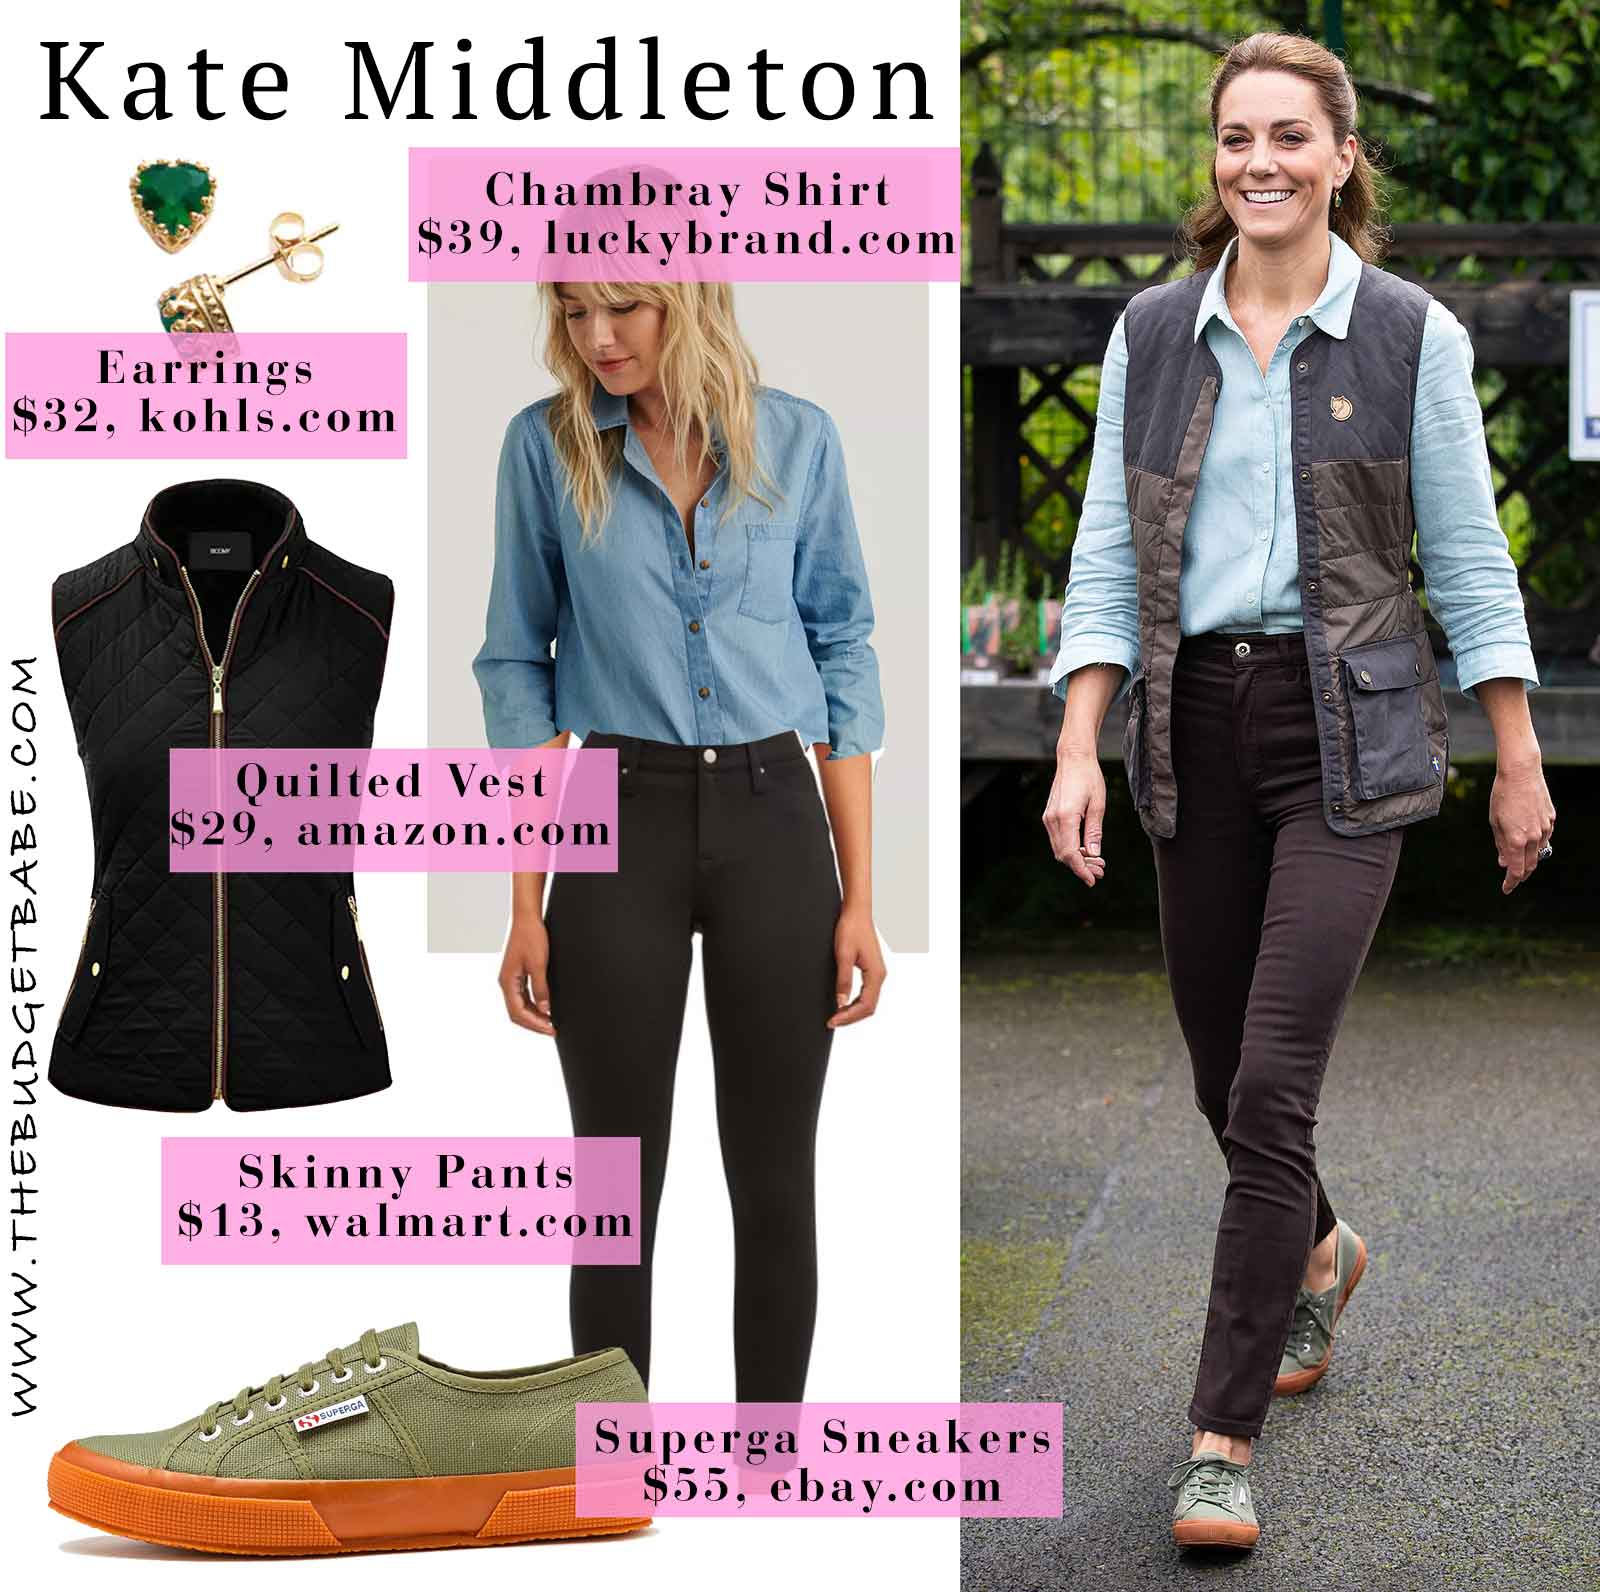 Photo of Get the Look: Kate Middleton's Chambray Shirt and Superga Sneakers